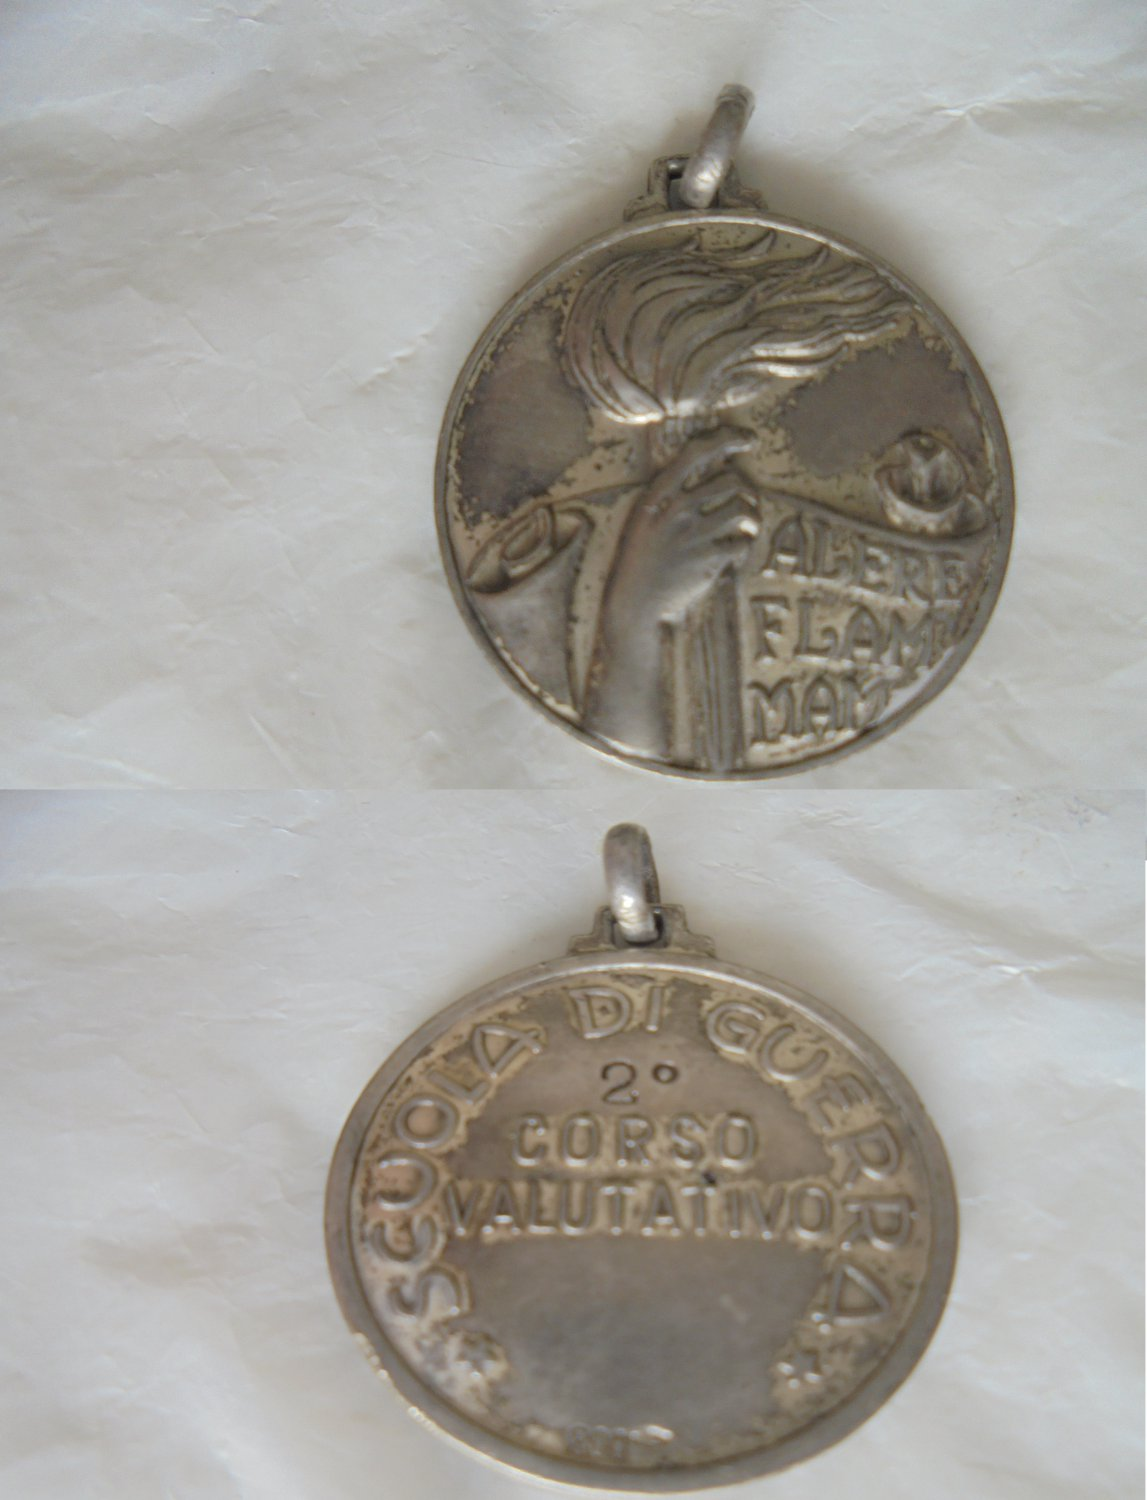 Italian Army school 2nd Course Military Medal in SILVER 800 Original 1946